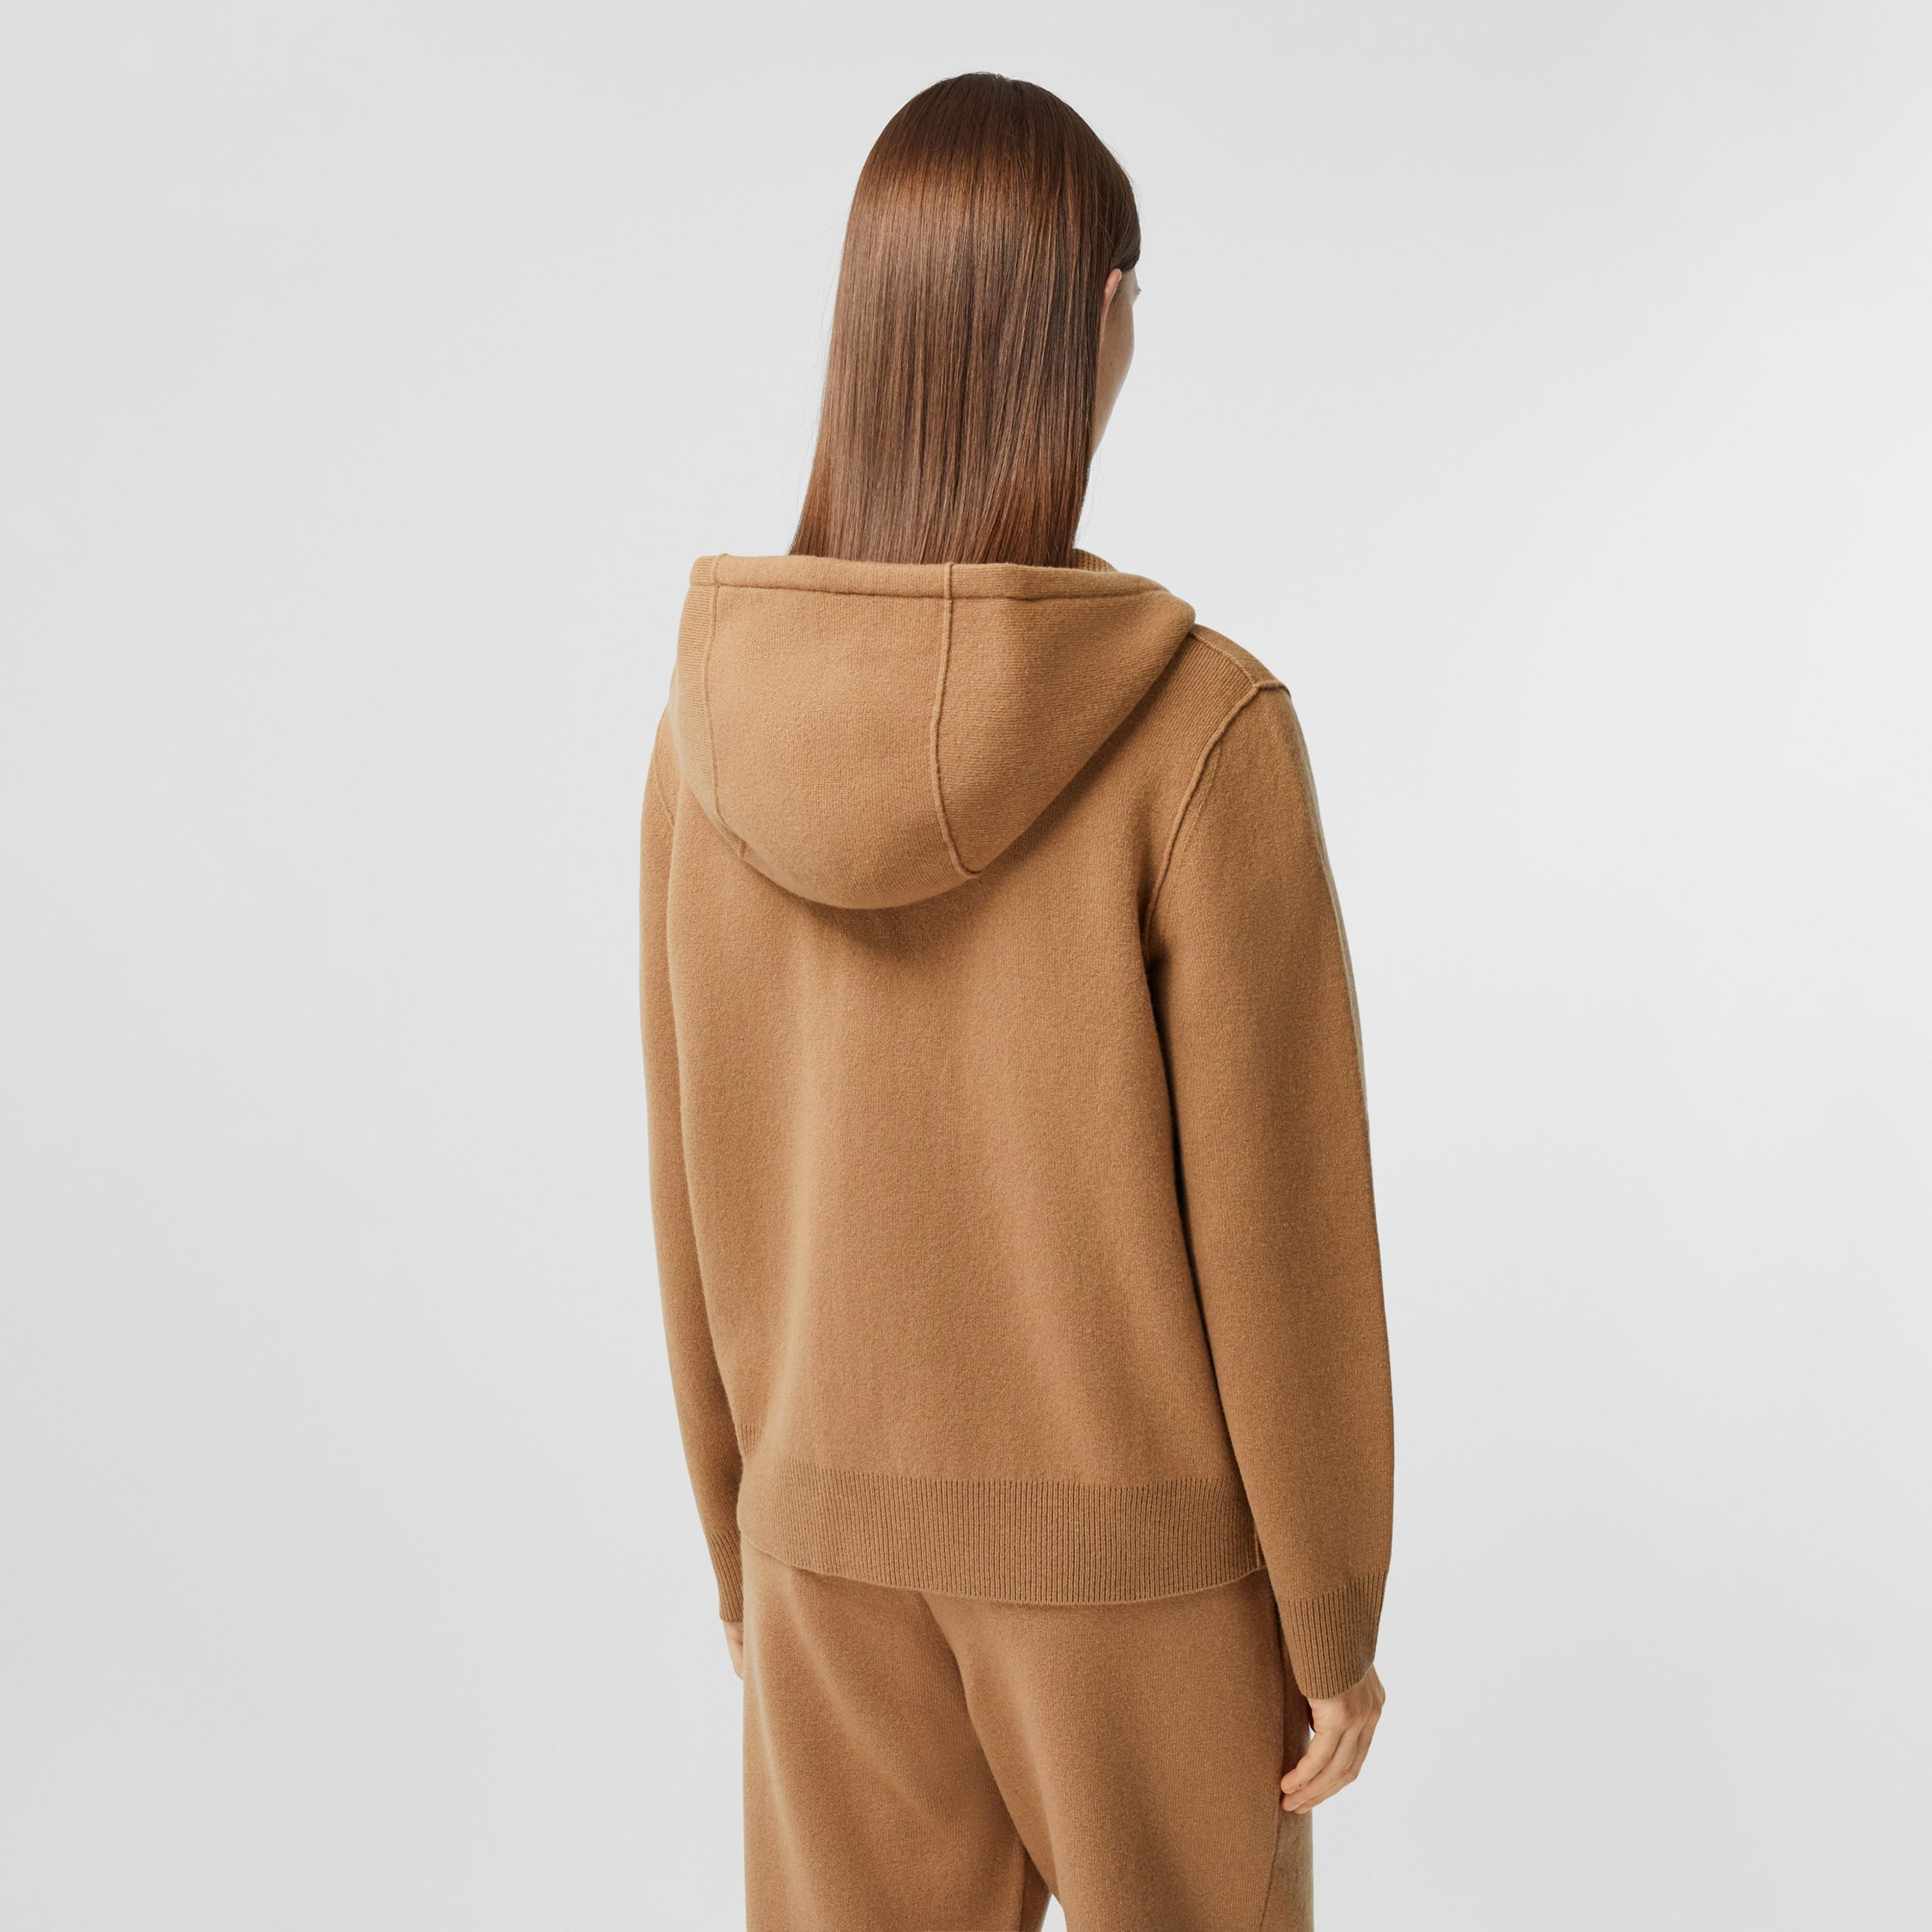 Monogram Motif Cashmere Blend Hooded Top in Camel - Women | Burberry - 3